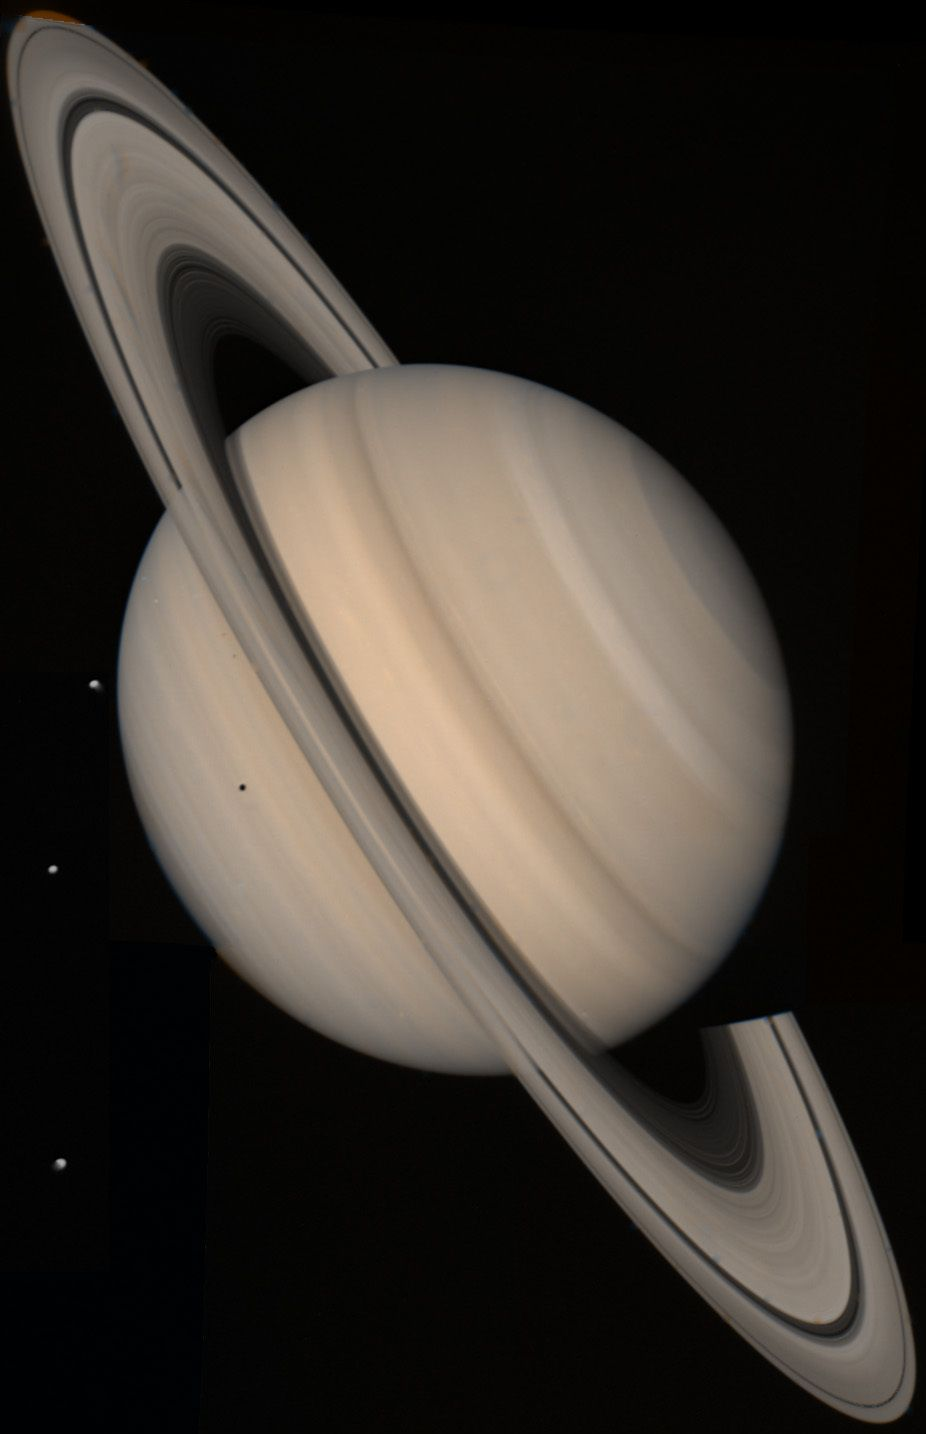 Real Of Saturn Planet - Pics Space Planets